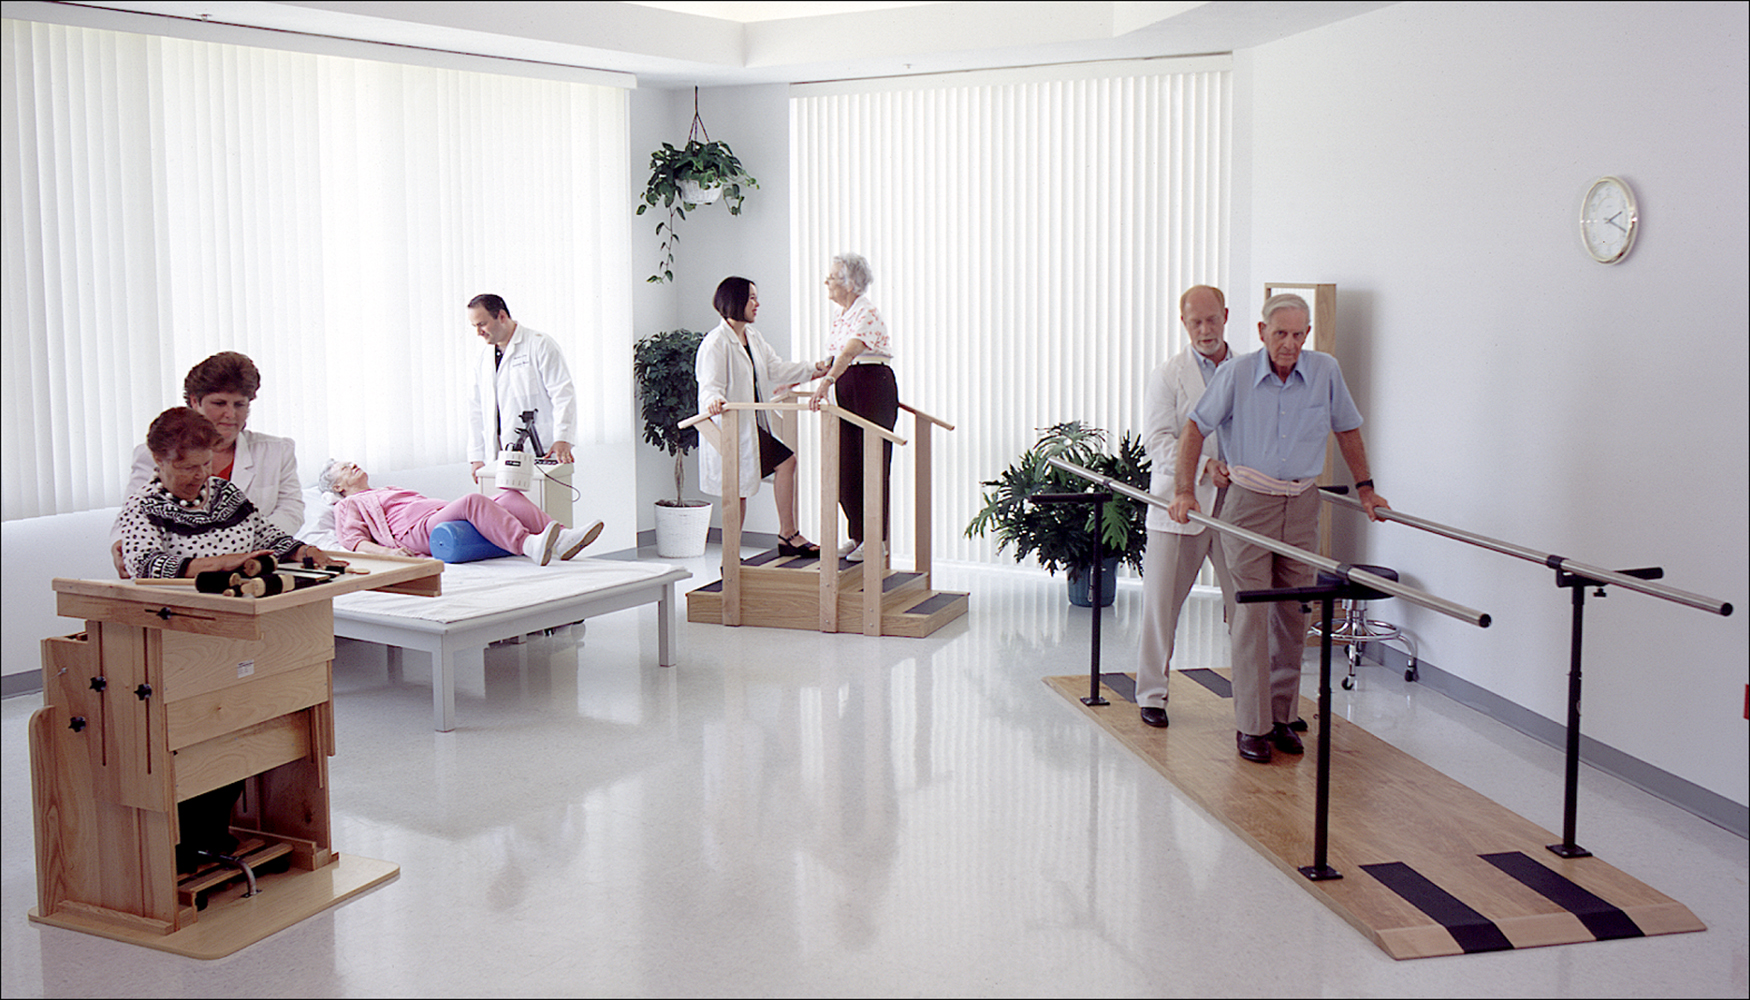 Bright room showing various physical therapy patients working with therapists Corporate Photography